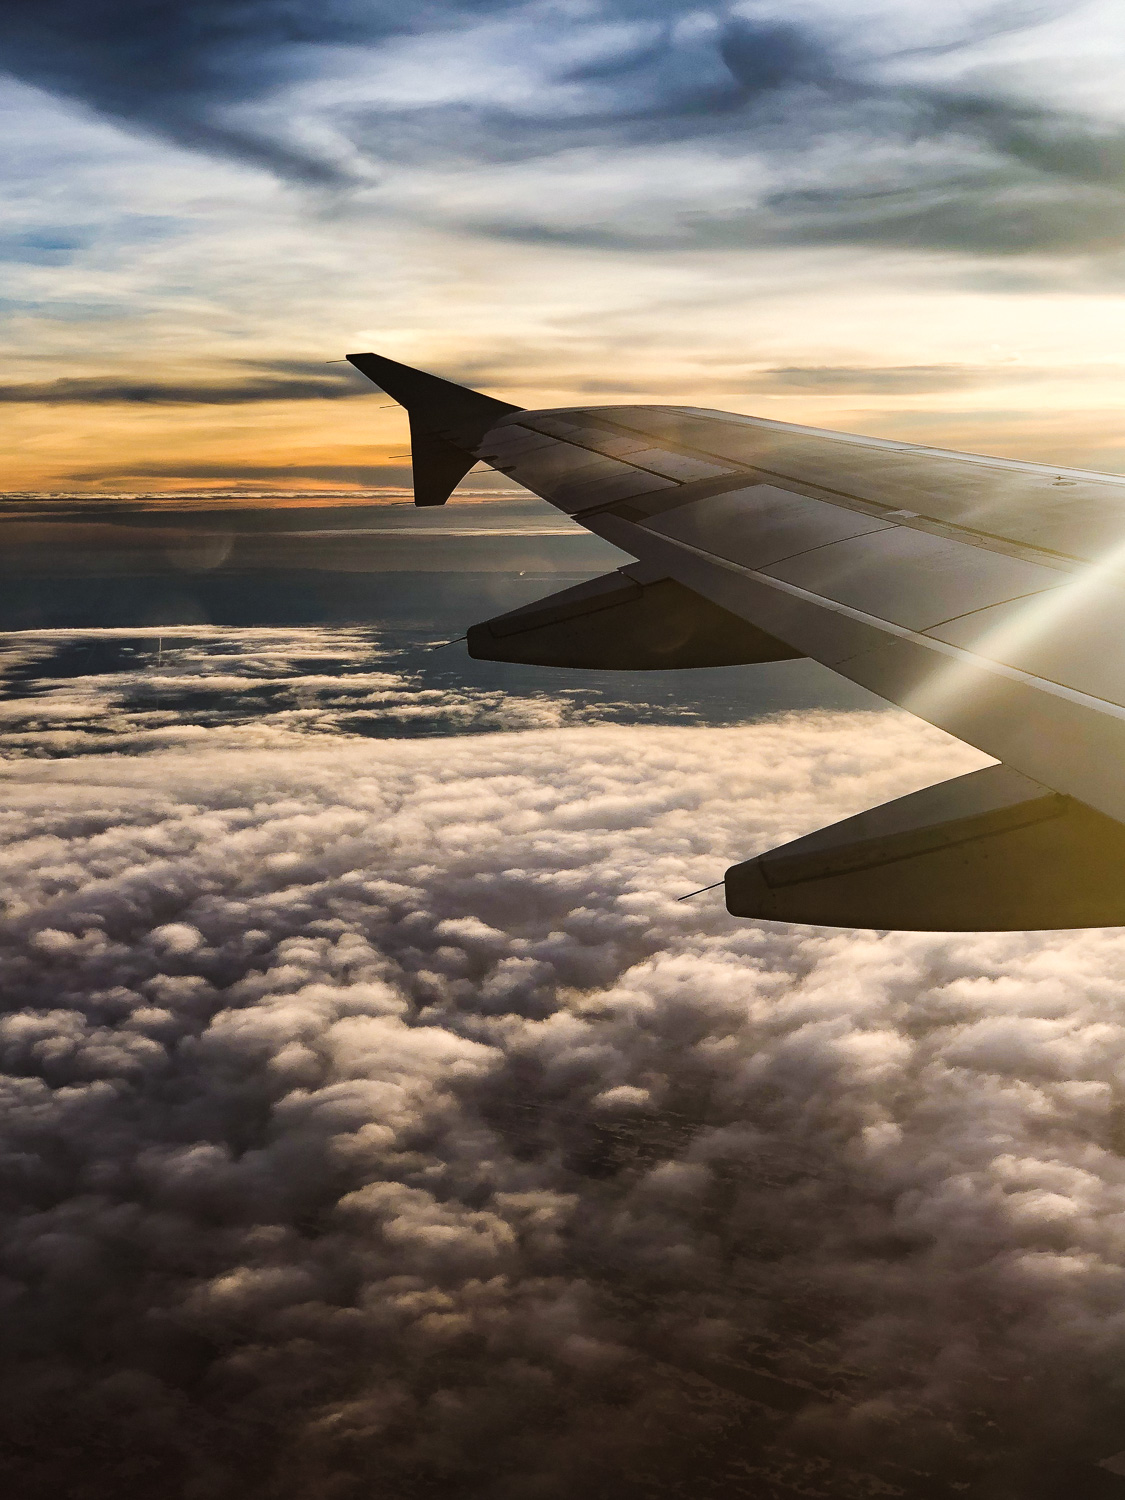 40 Questions From An Anxious Flyer - Answered By A Pilot